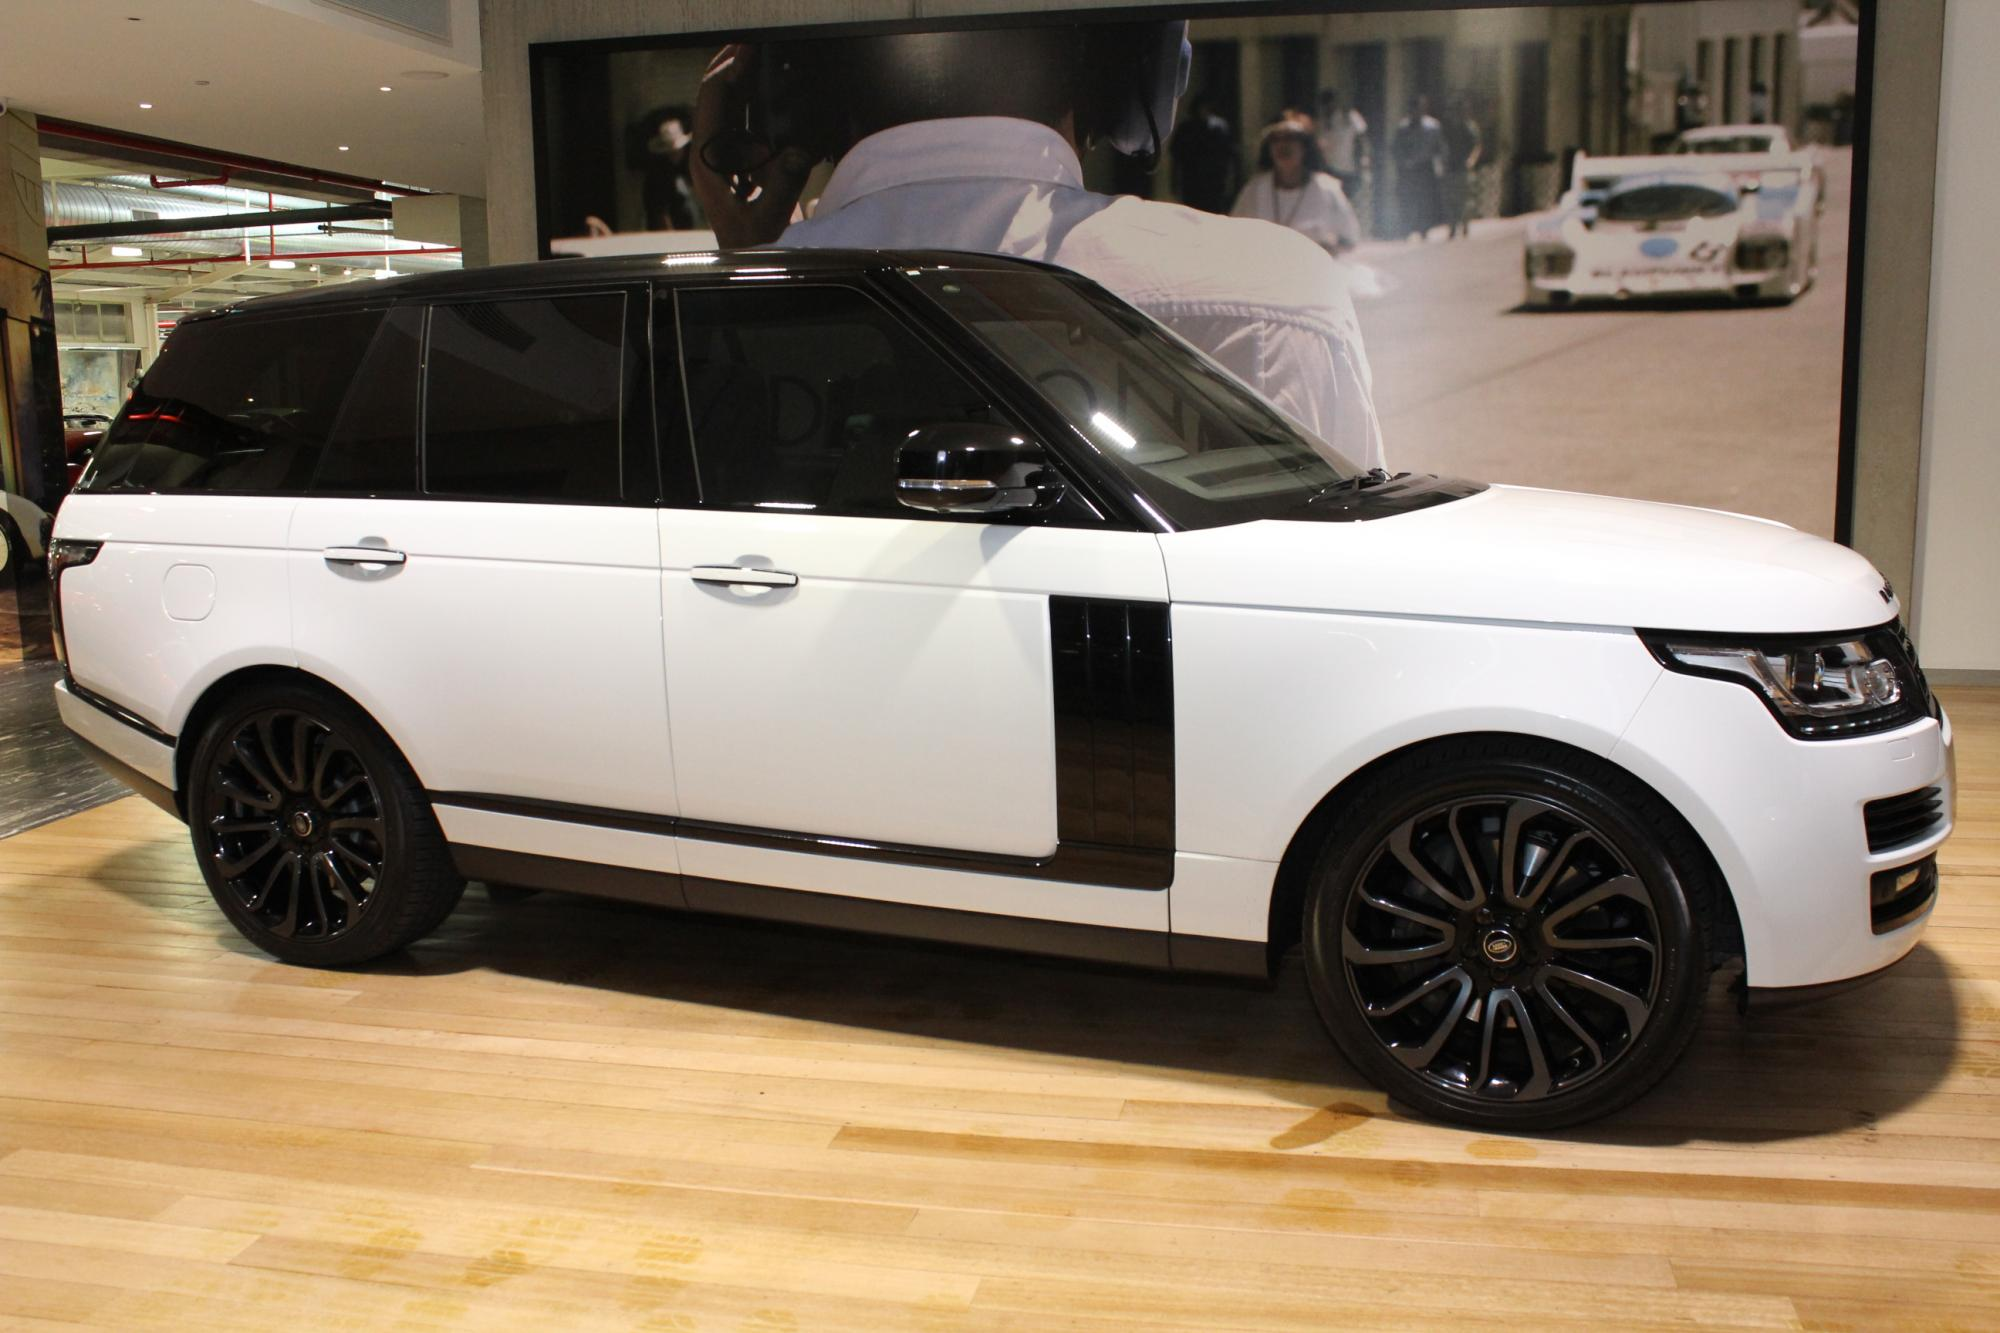 2014 land rover range rover l405 sdv8 autobiography wagon for Land rover tarbes garage moderne